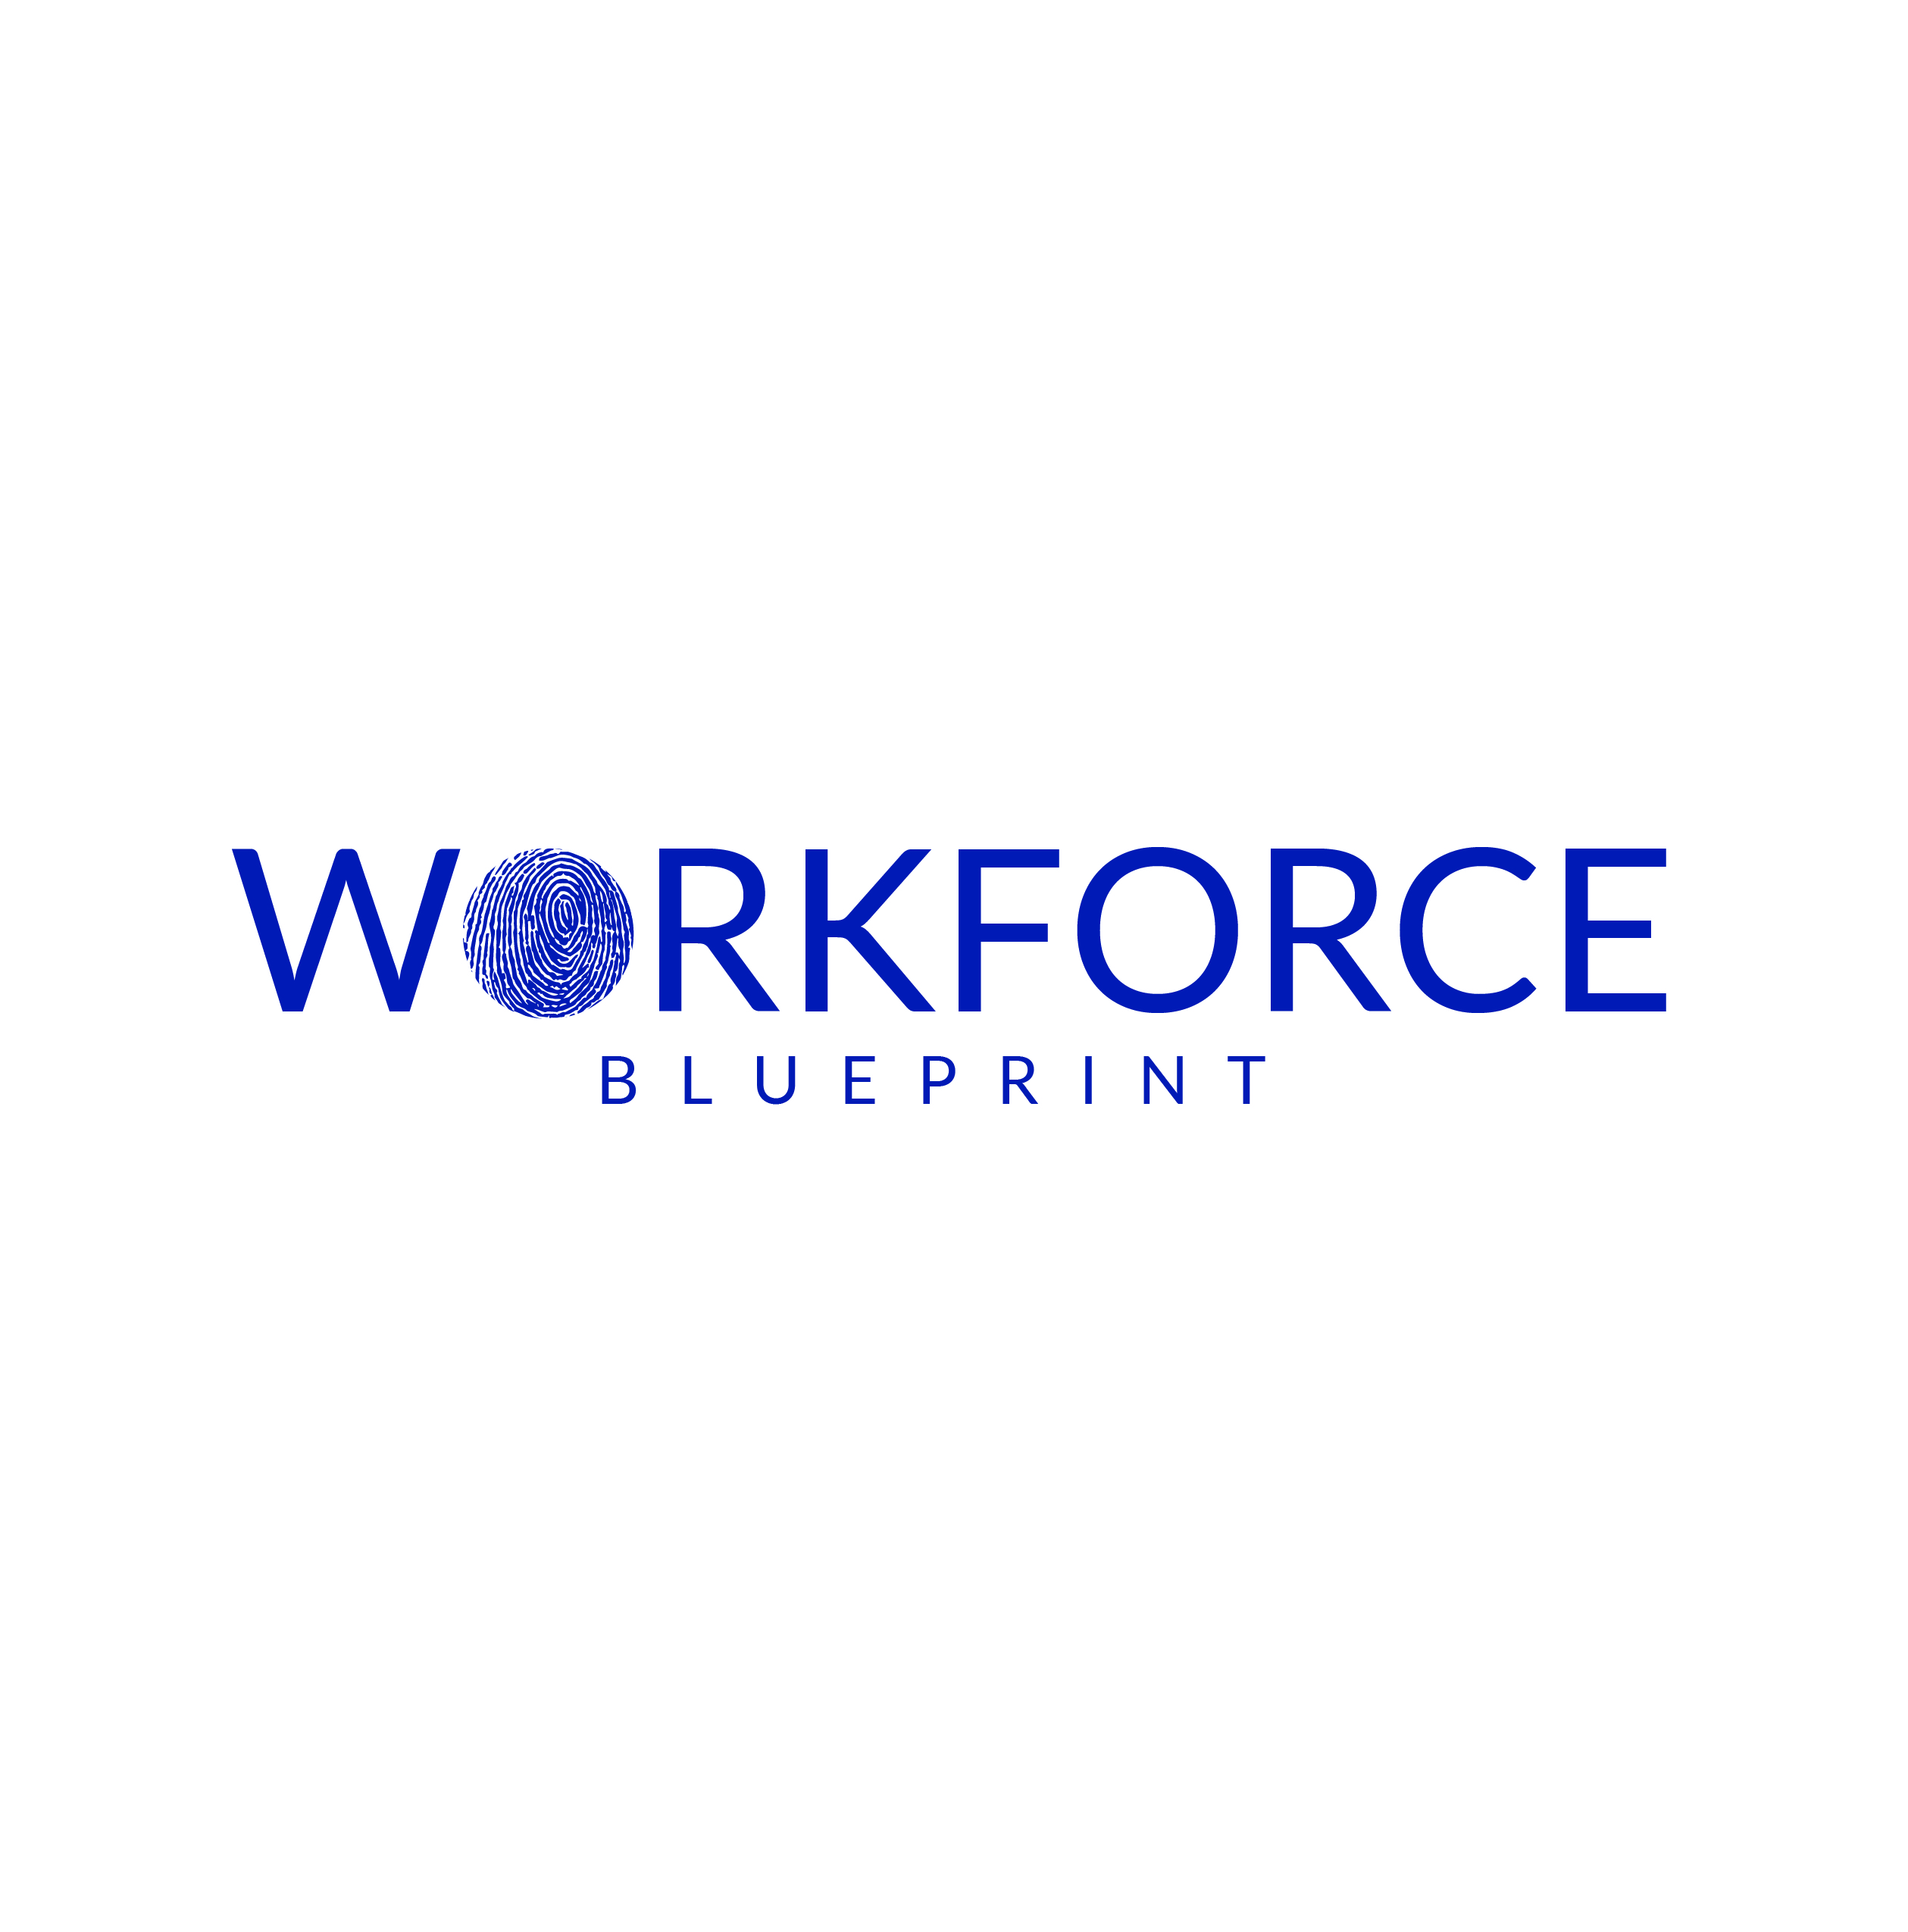 workforce blueprint original